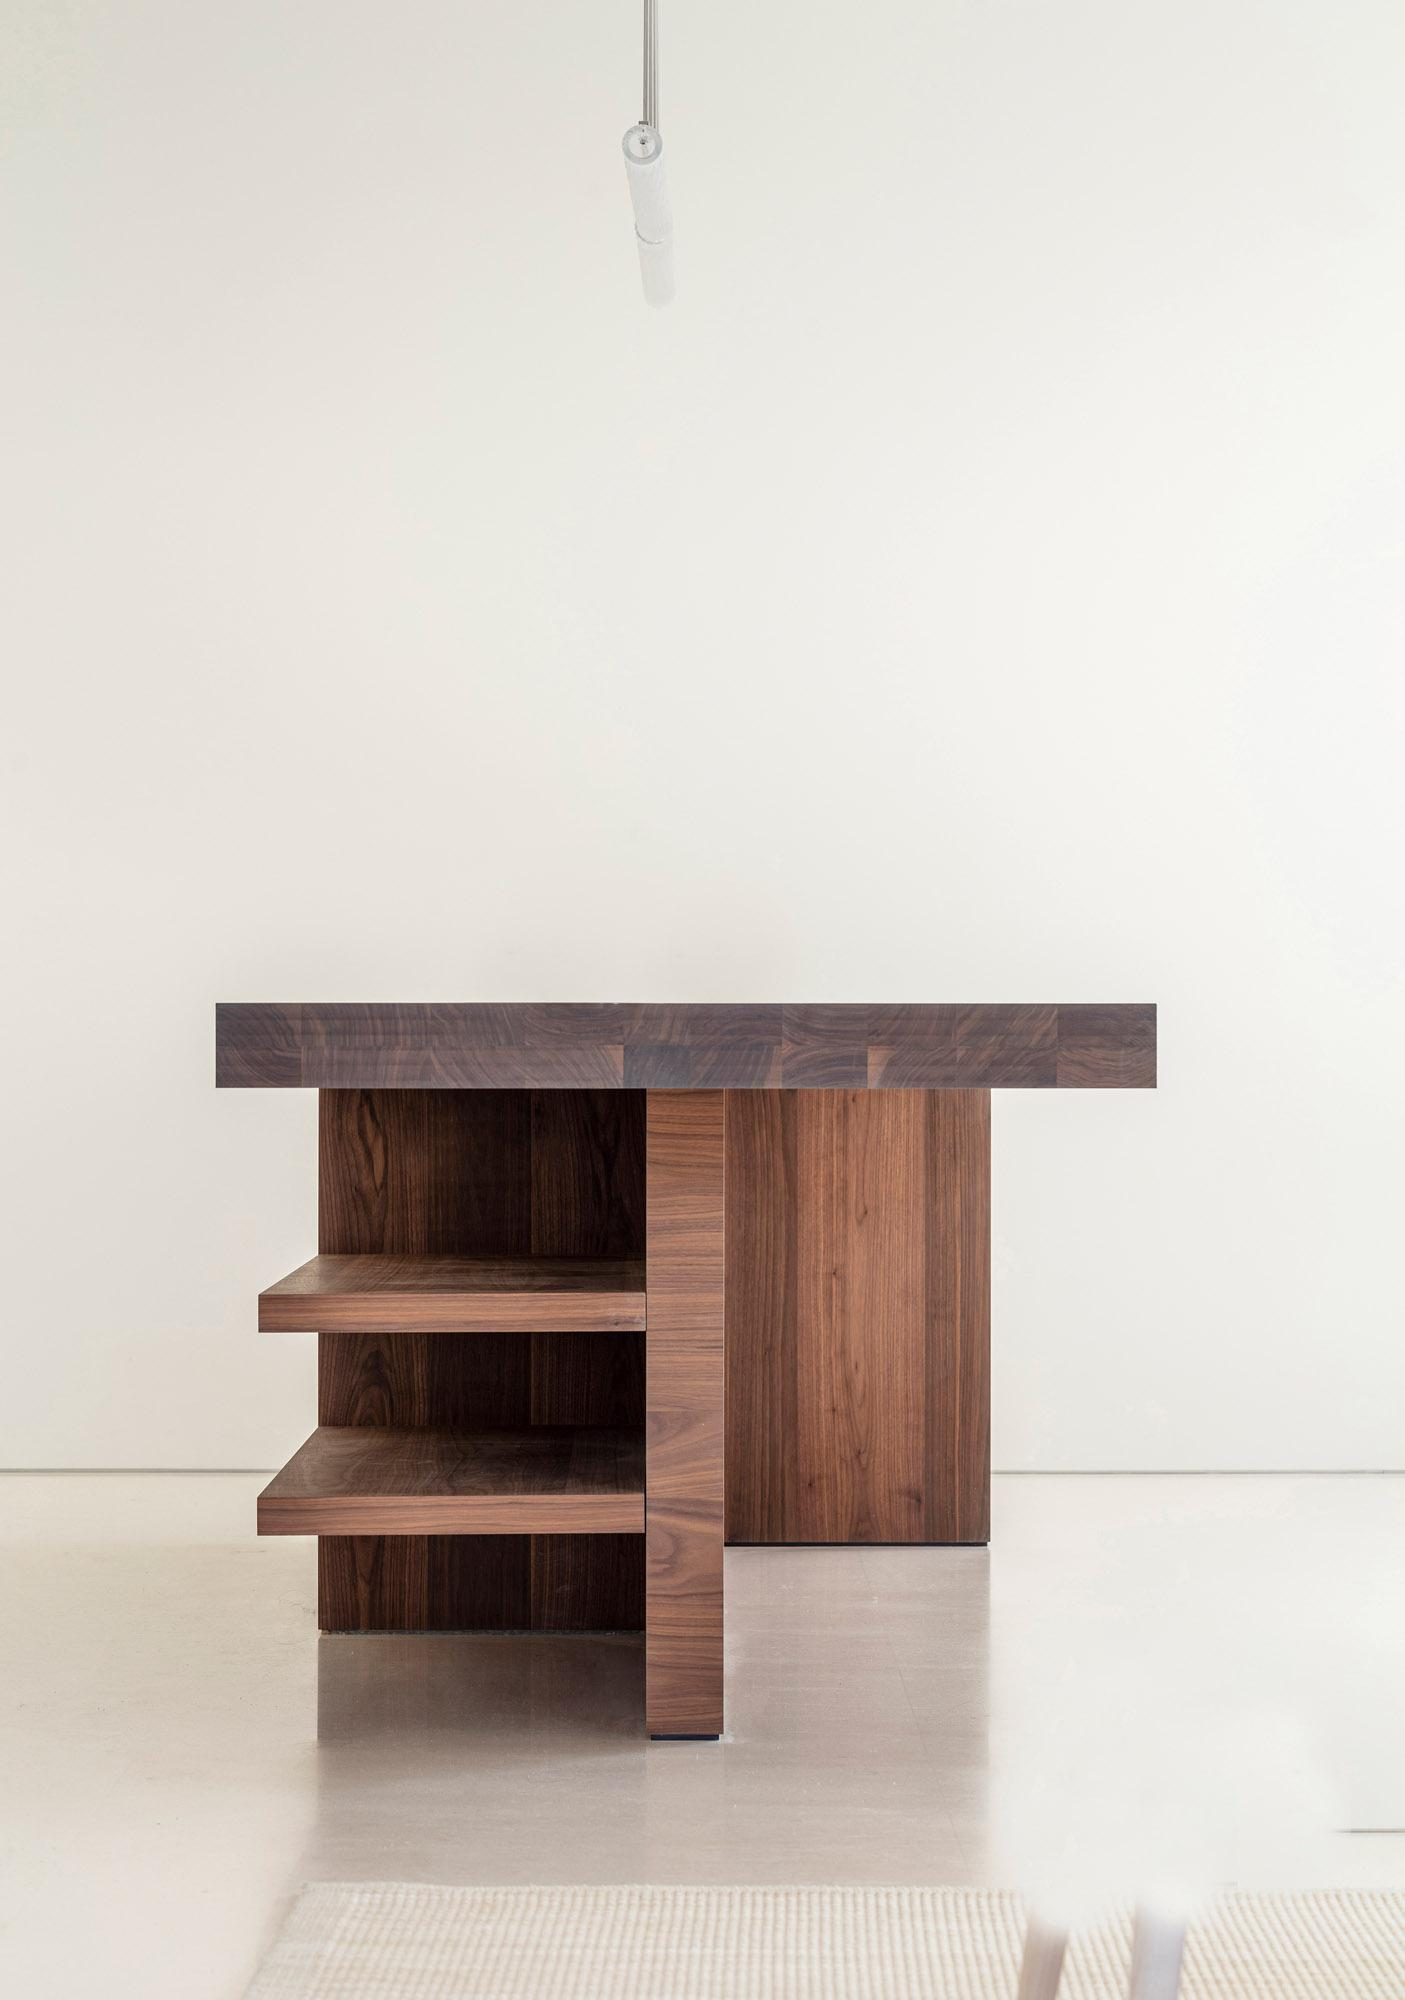 The side of a wooden kitchen designed by John Pawson for Obumex featuring side shelves